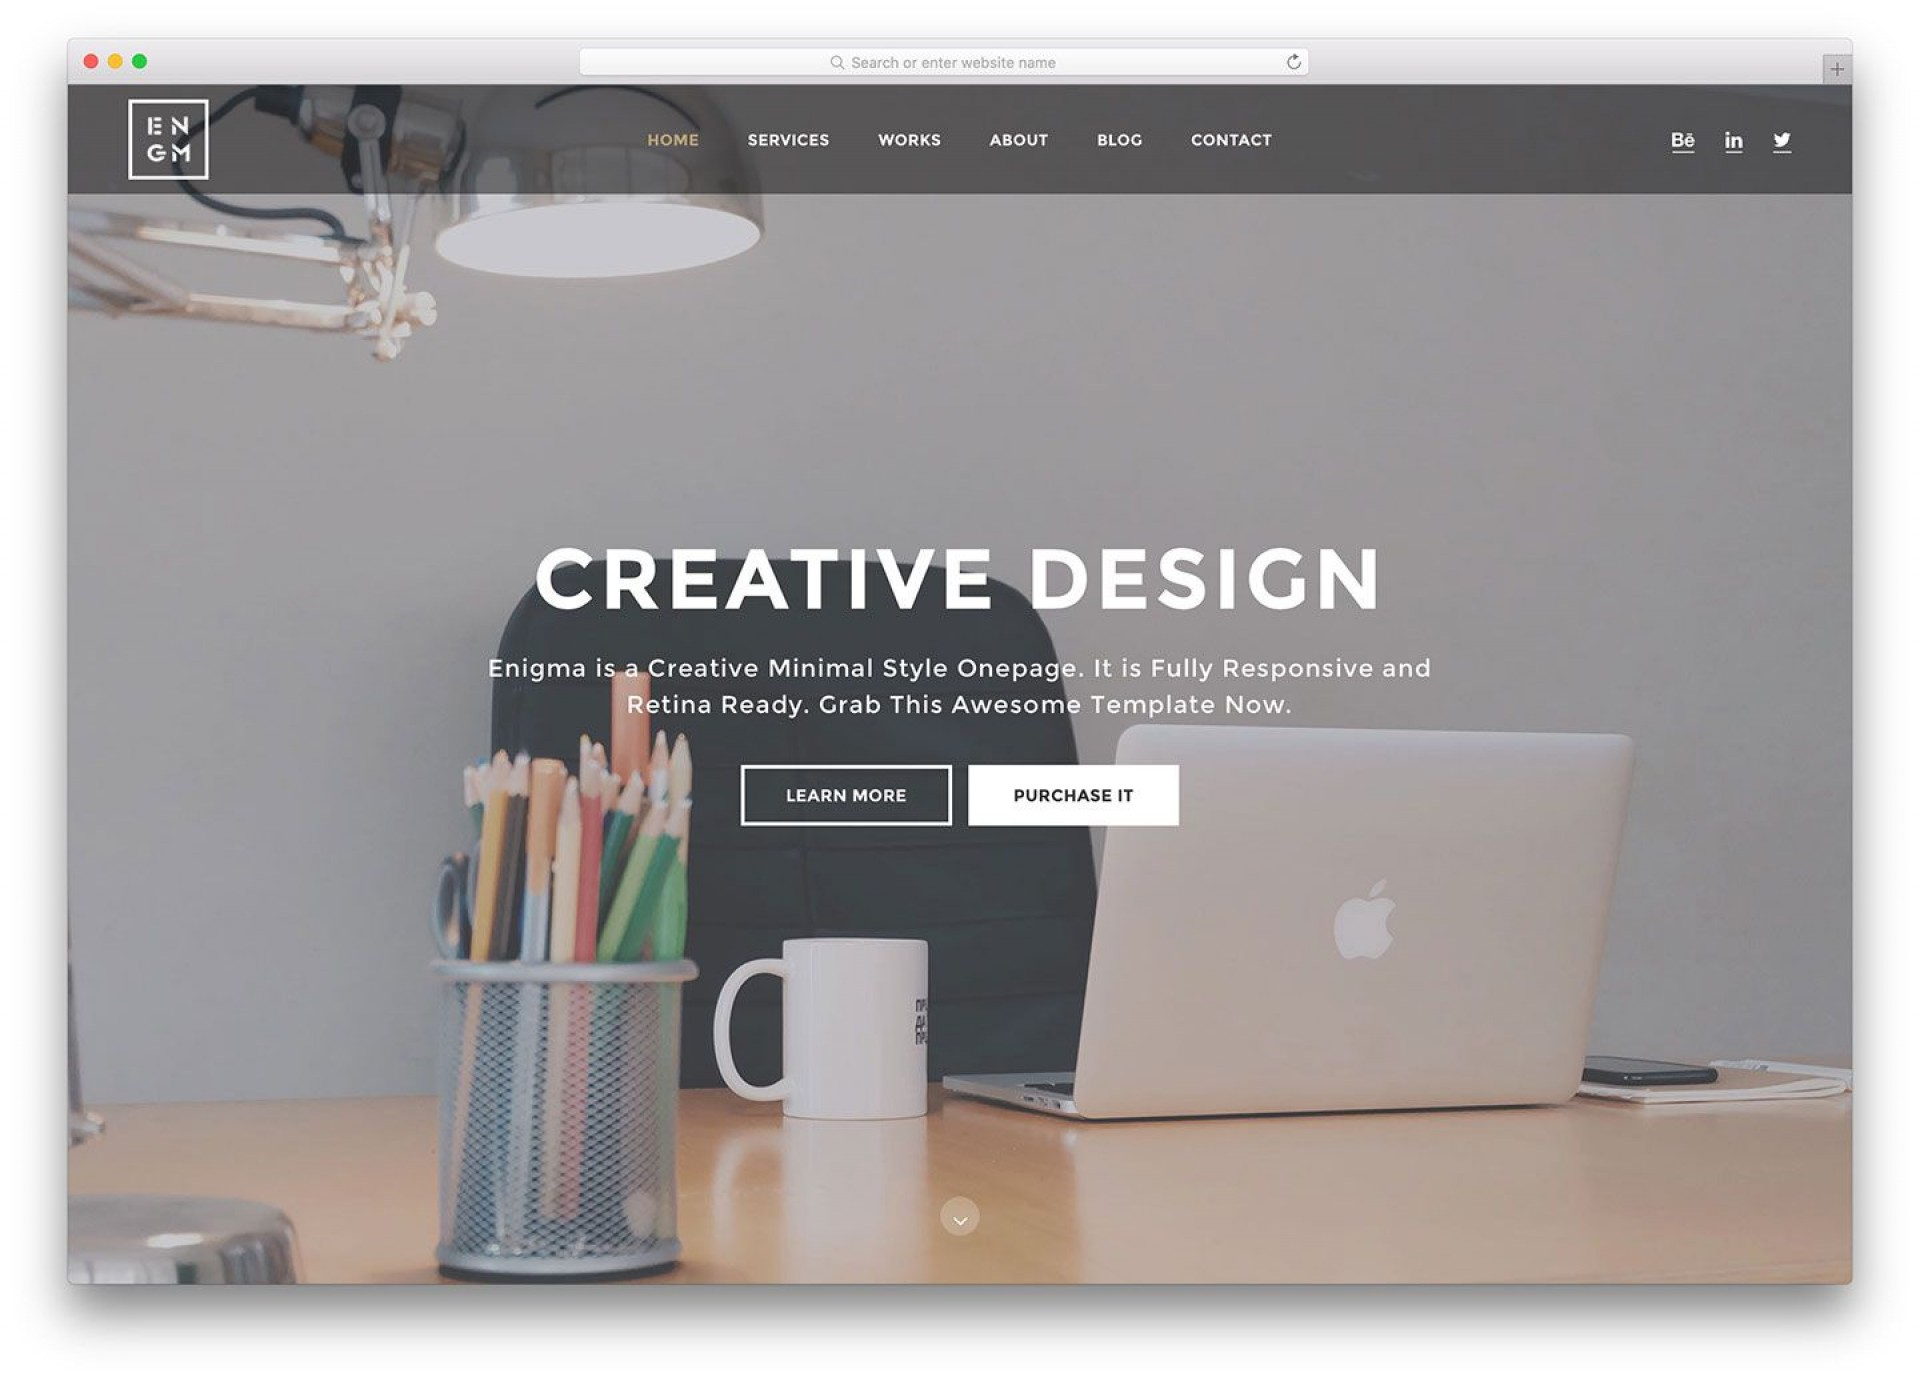 007 Striking Simple Html Web Template Free Download Picture  Website With Cs Bootstrap Without1920